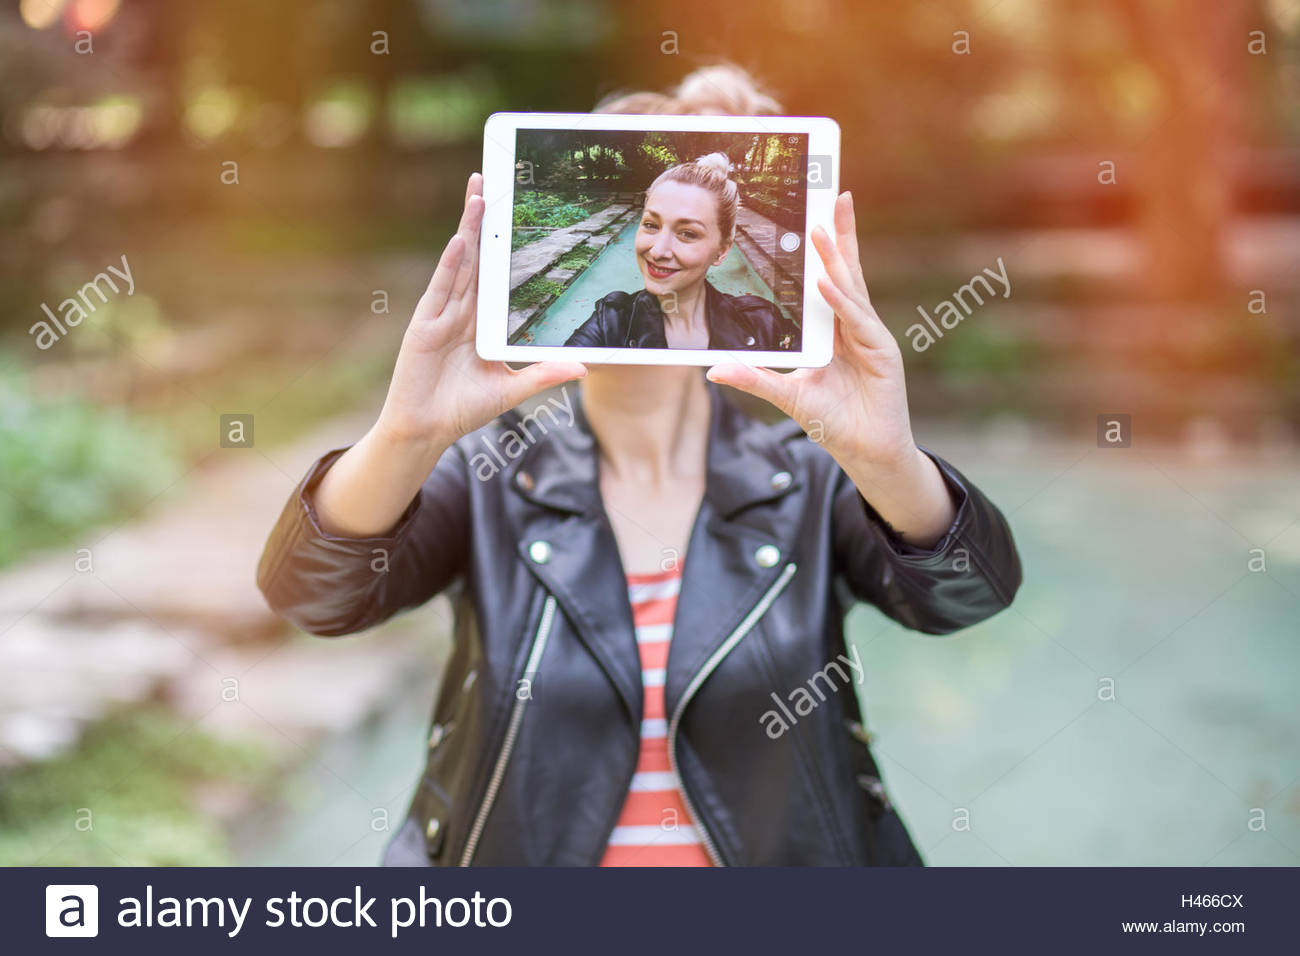 beautiful young woman taking a selfie with her tablet. focus on the screen. graded with a flare, in instagram style - Stock Image